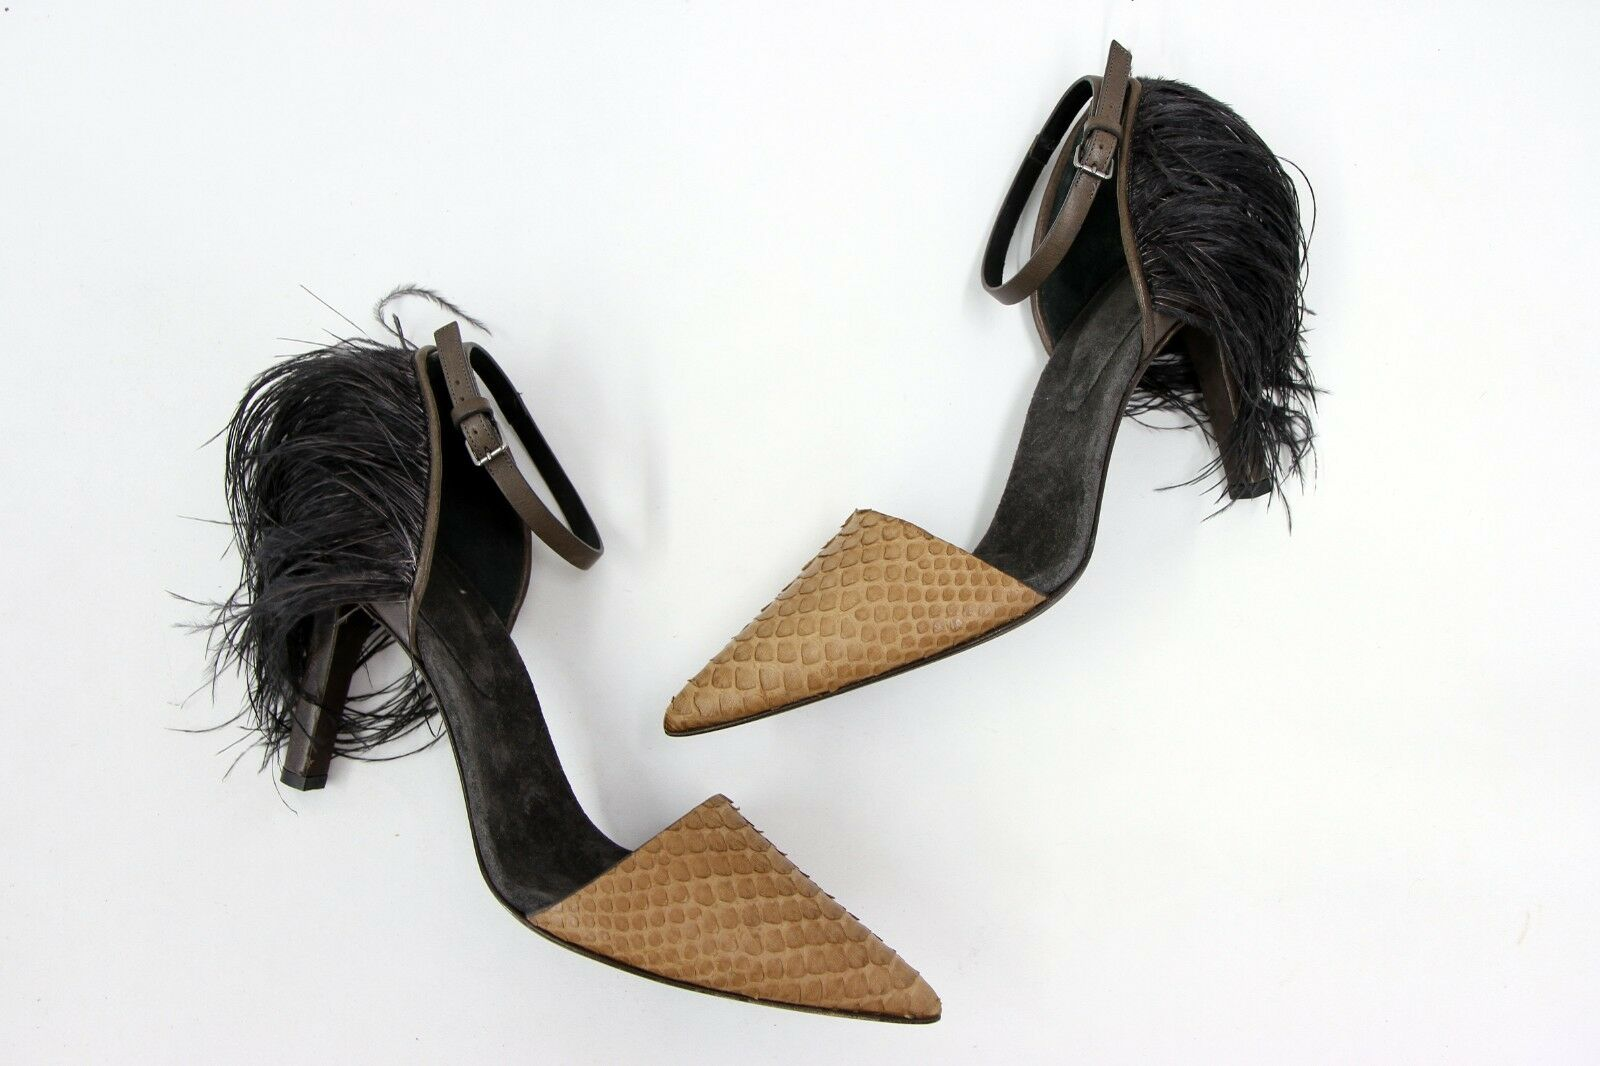 NWOB  1530 Brunello Cucinelli Cucinelli Cucinelli Genuine Suede Snakeskin Feathered Strappy Pumps e0739c